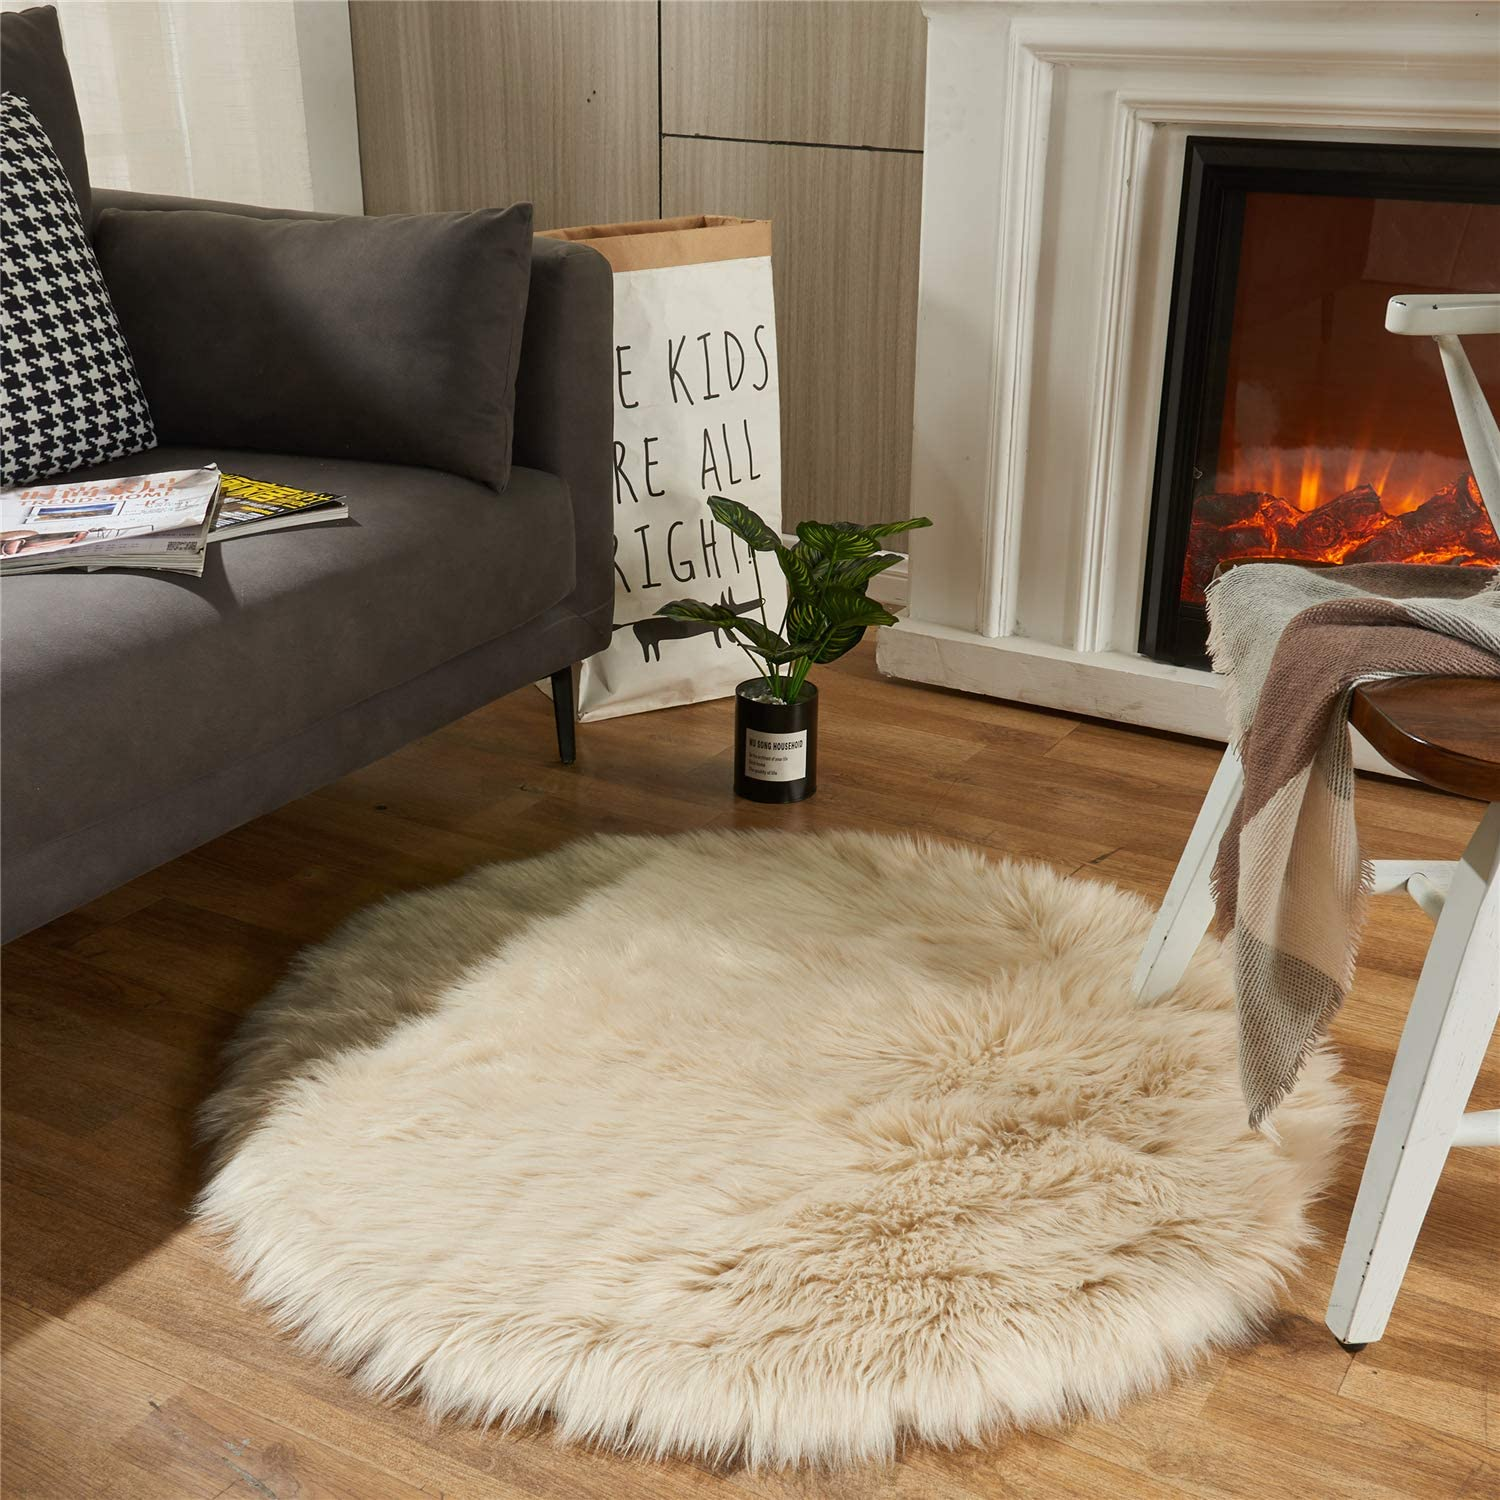 EasyJoy Ultra Soft Fluffy Rugs Faux Fur Rug Chair Cover Seat Pad Fuzzy Area Rug for Bedroom Floor Sofa Living Room (3 x 3 ft Round, Beige)